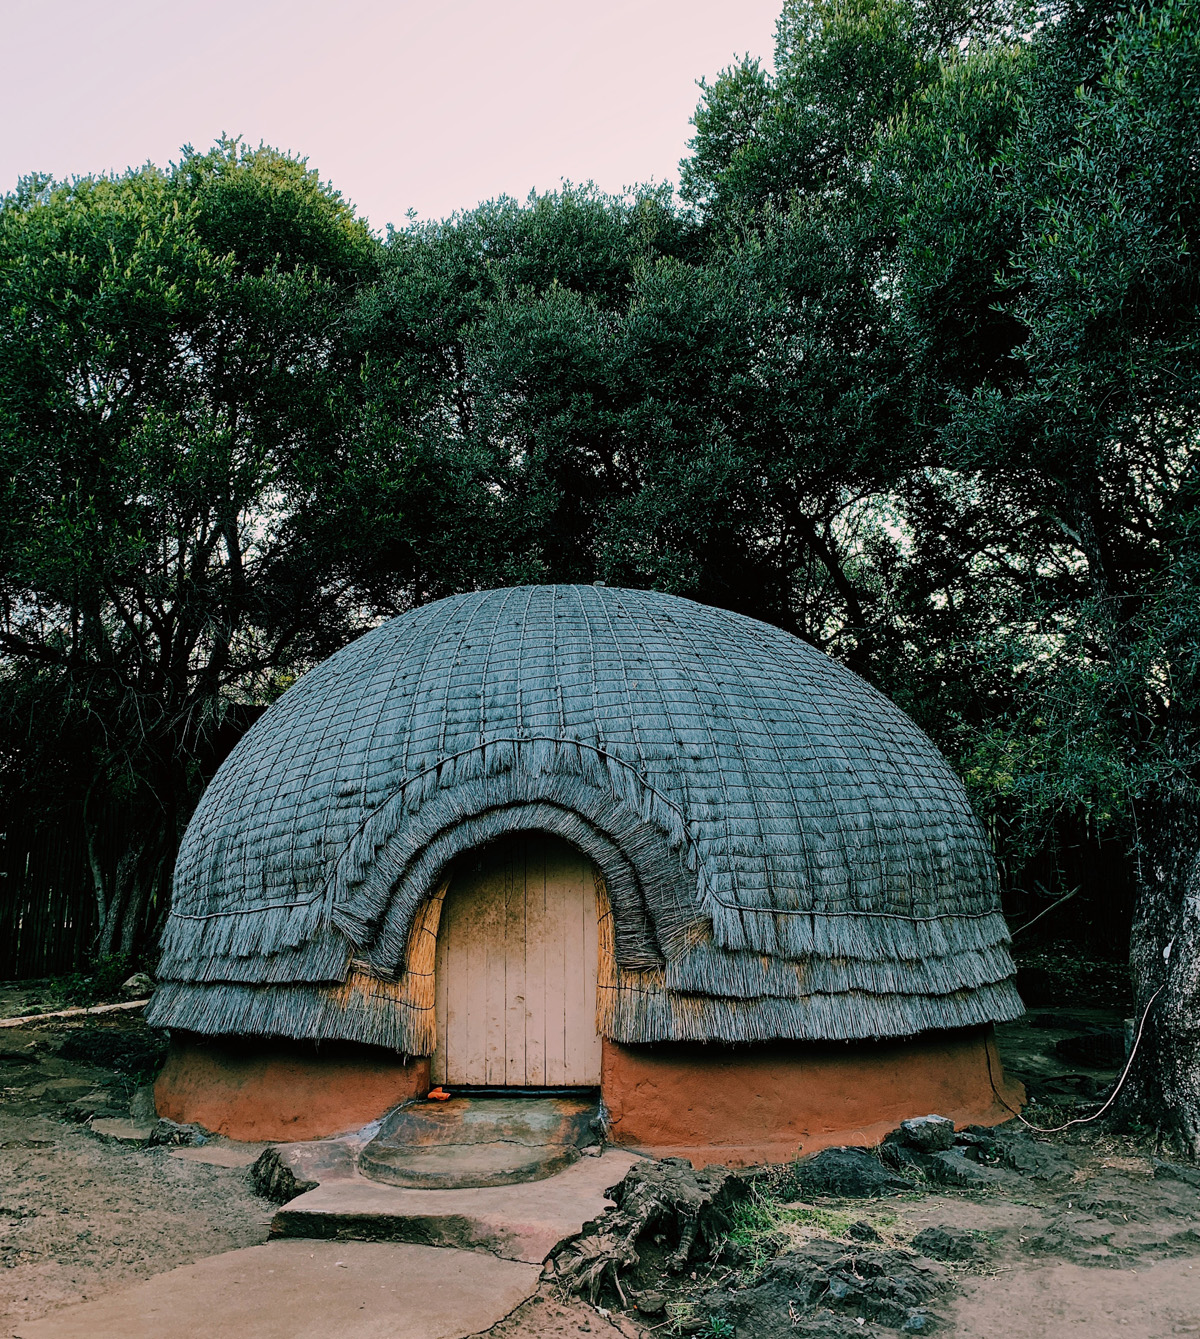 Hut from South Africa Xhosa